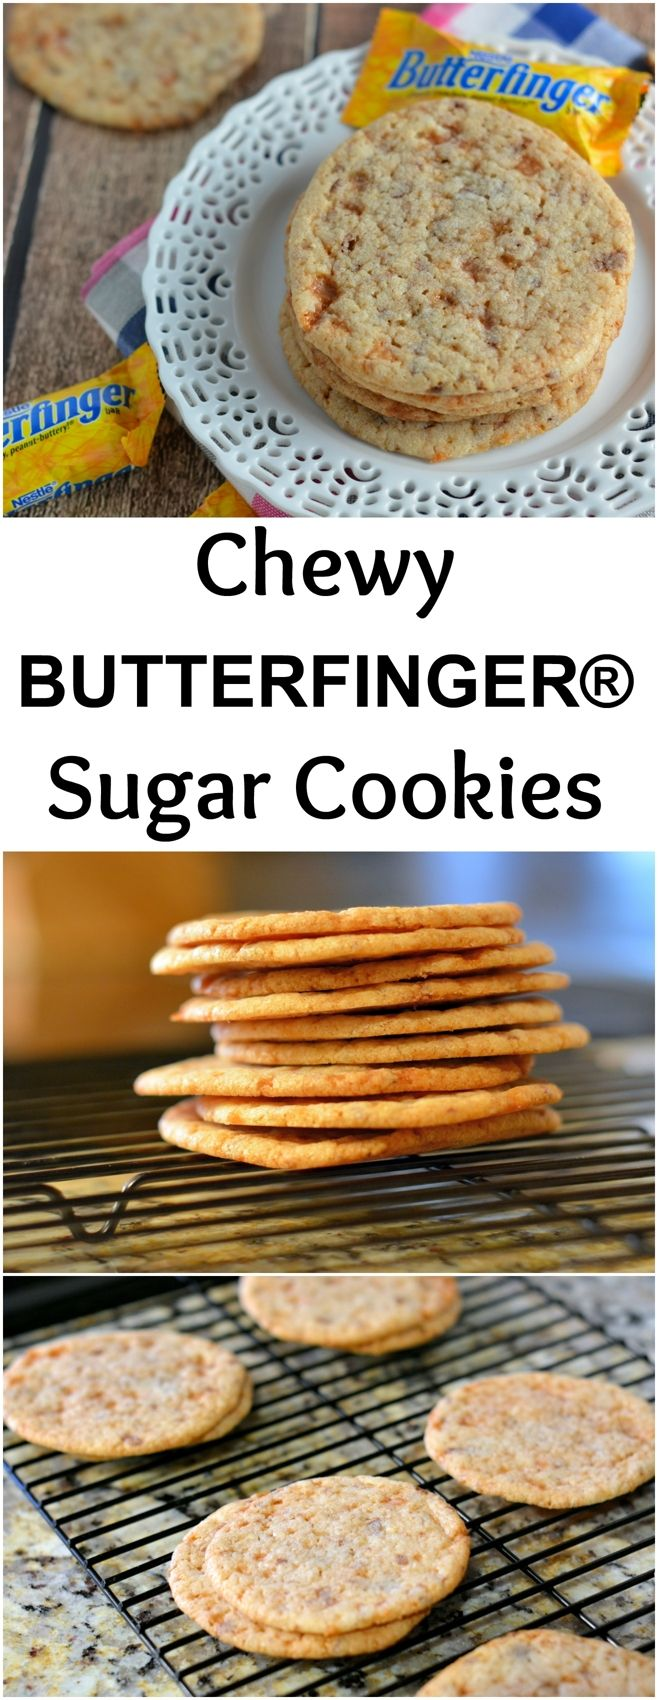 BUTTERFINGER® Sugar Cookies Recipe- soft and chewy sugar cookies ...